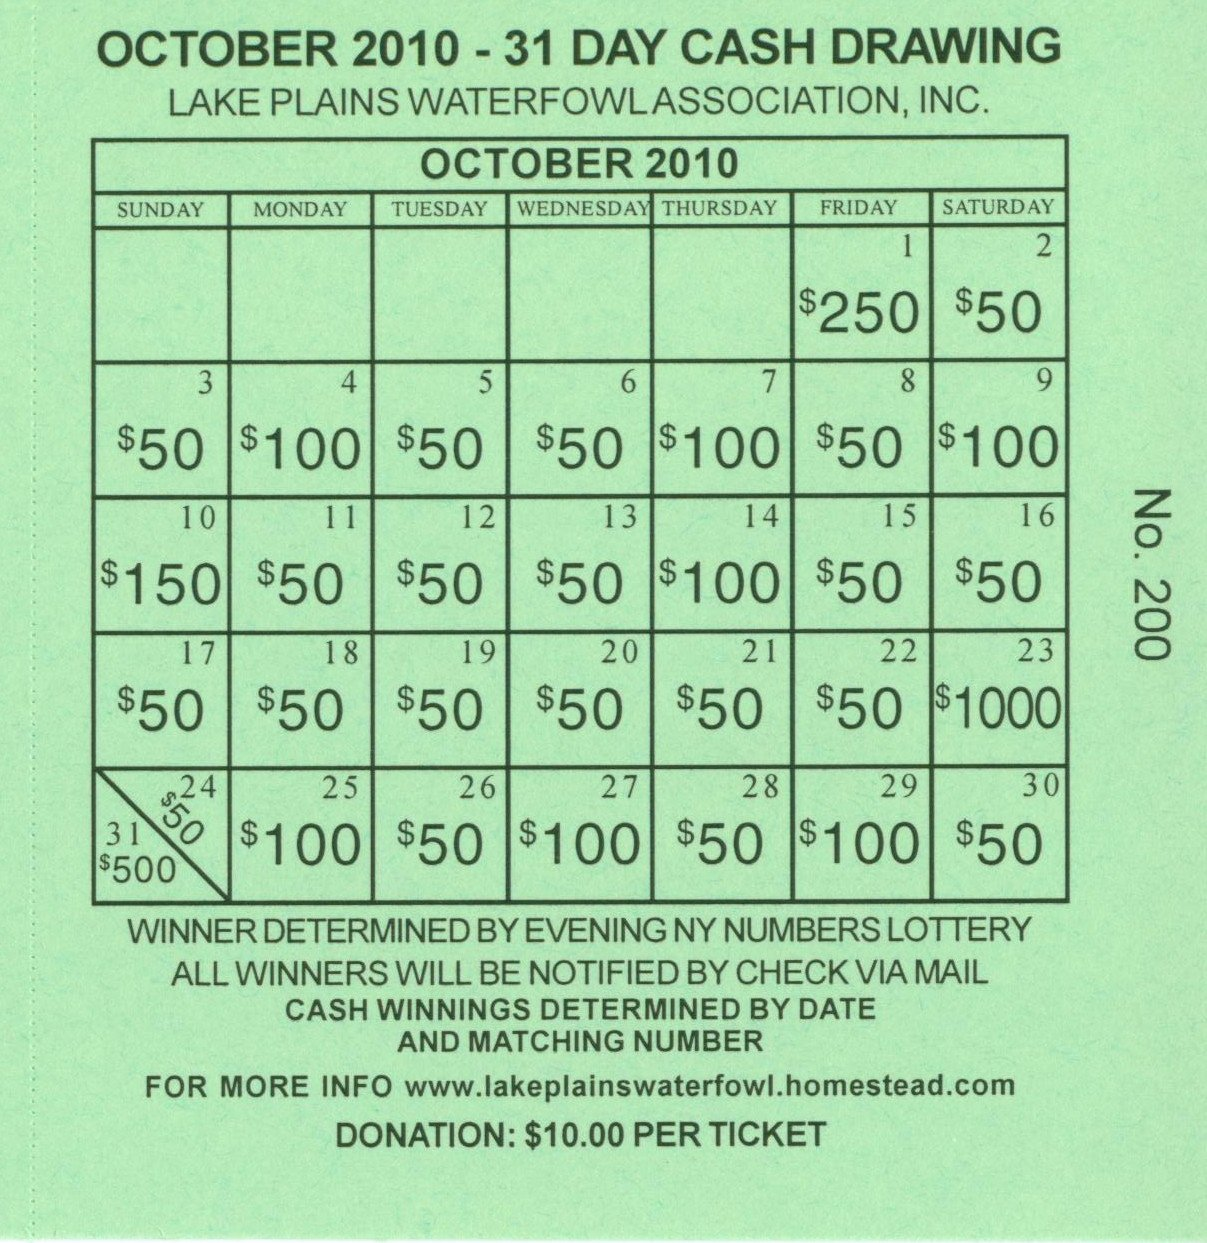 Lottery Ticket Fundraiser Template Lovely Lottery Calendar Fundraiser Template